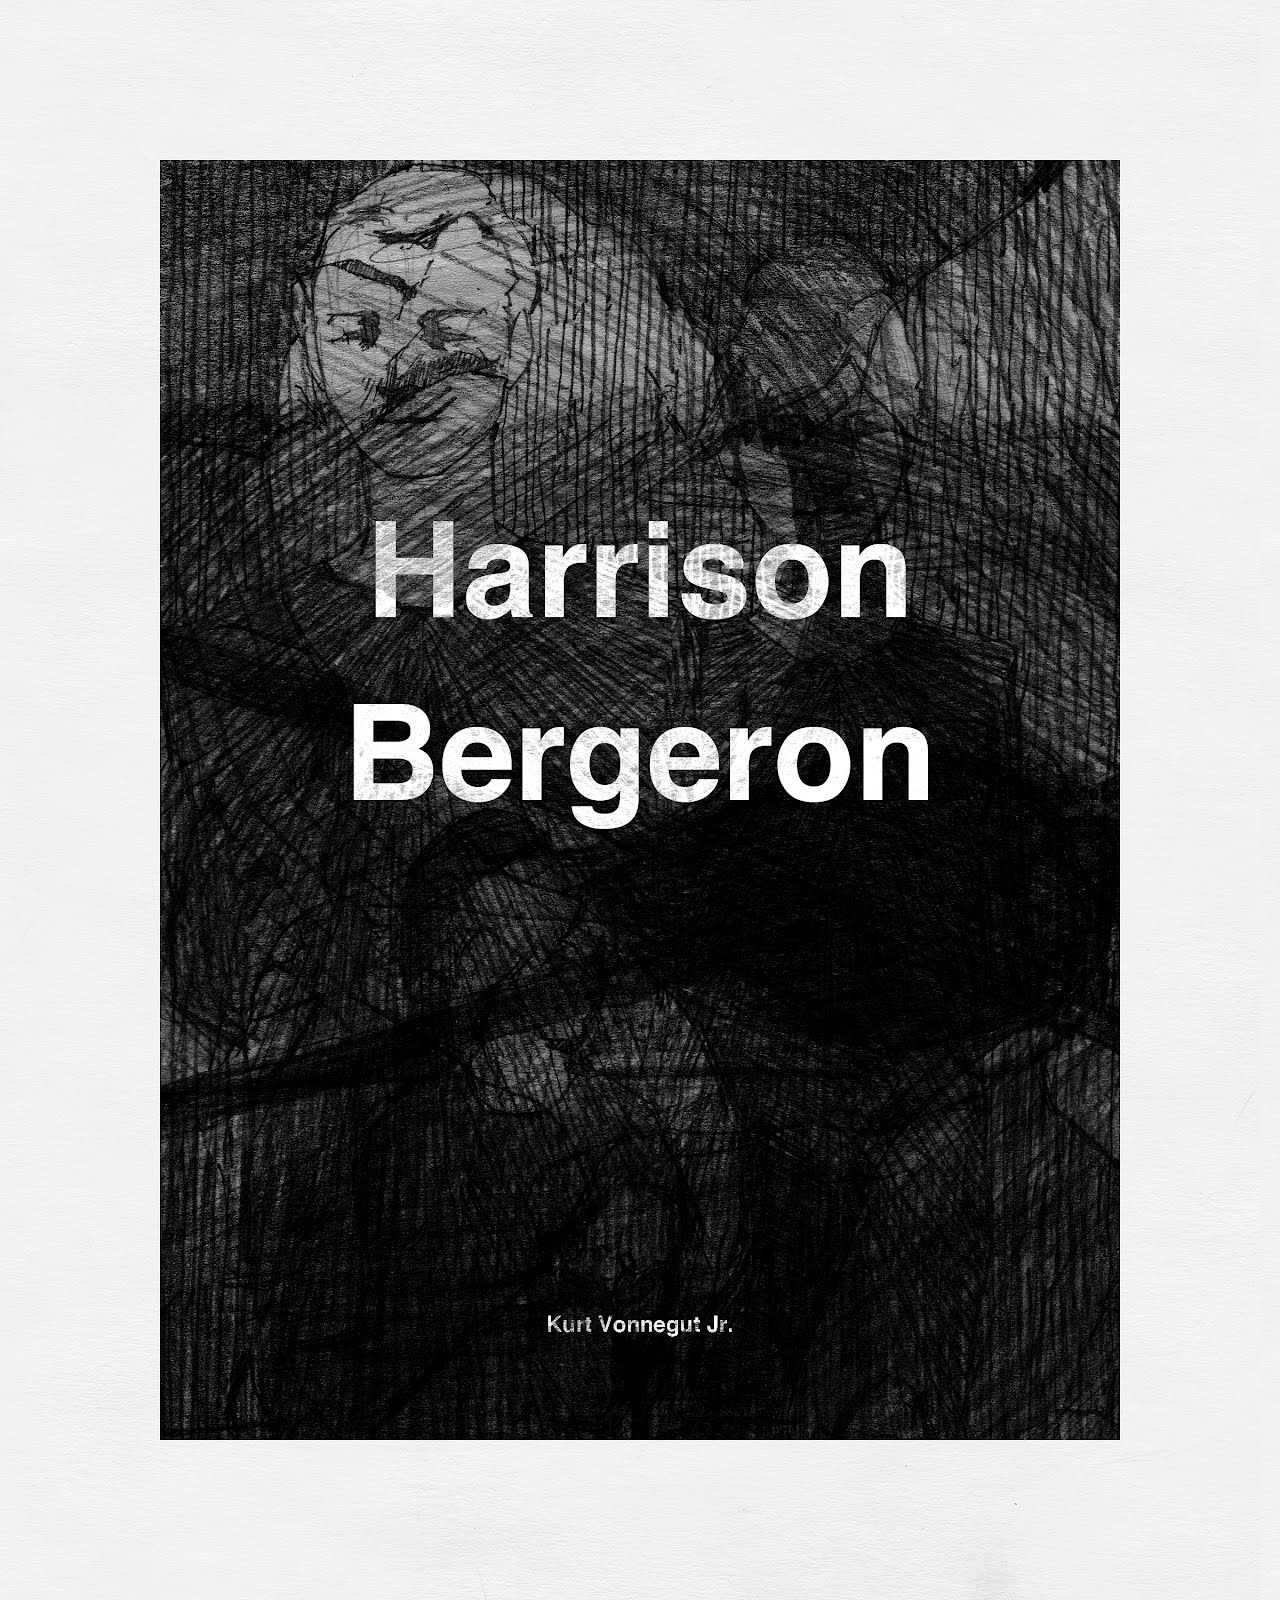 Thesis for harrison bergeron